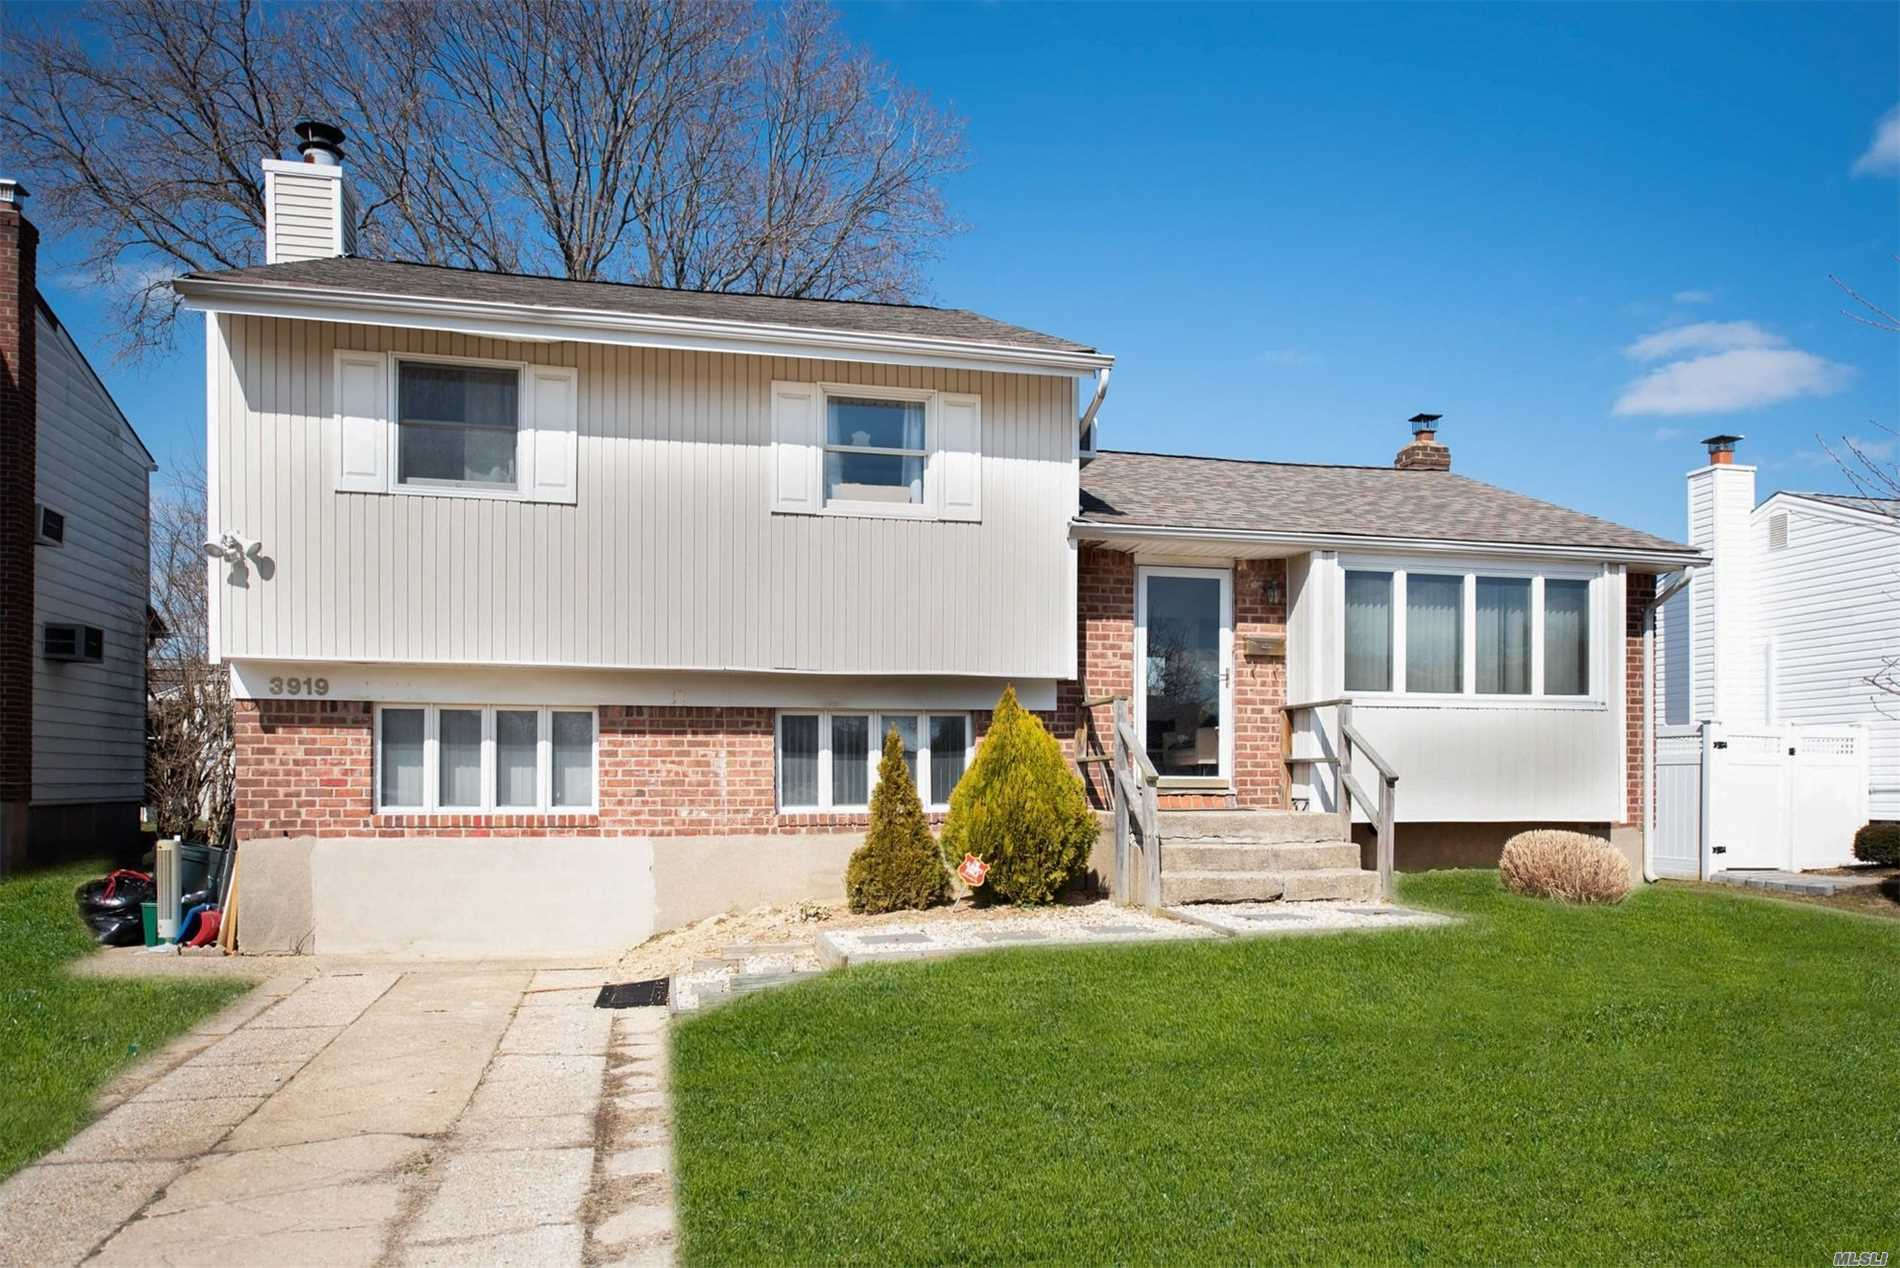 Splendid Seaford 4 Level Split. Newer roof, new alarm system. 2 Full Baths, 1 of them new with a Quartz countertop. Levittown Schools. 3 nice sized bedrooms, family room or den, and an office. Mid-block location. Close to parkways, shopping, beach & golf.